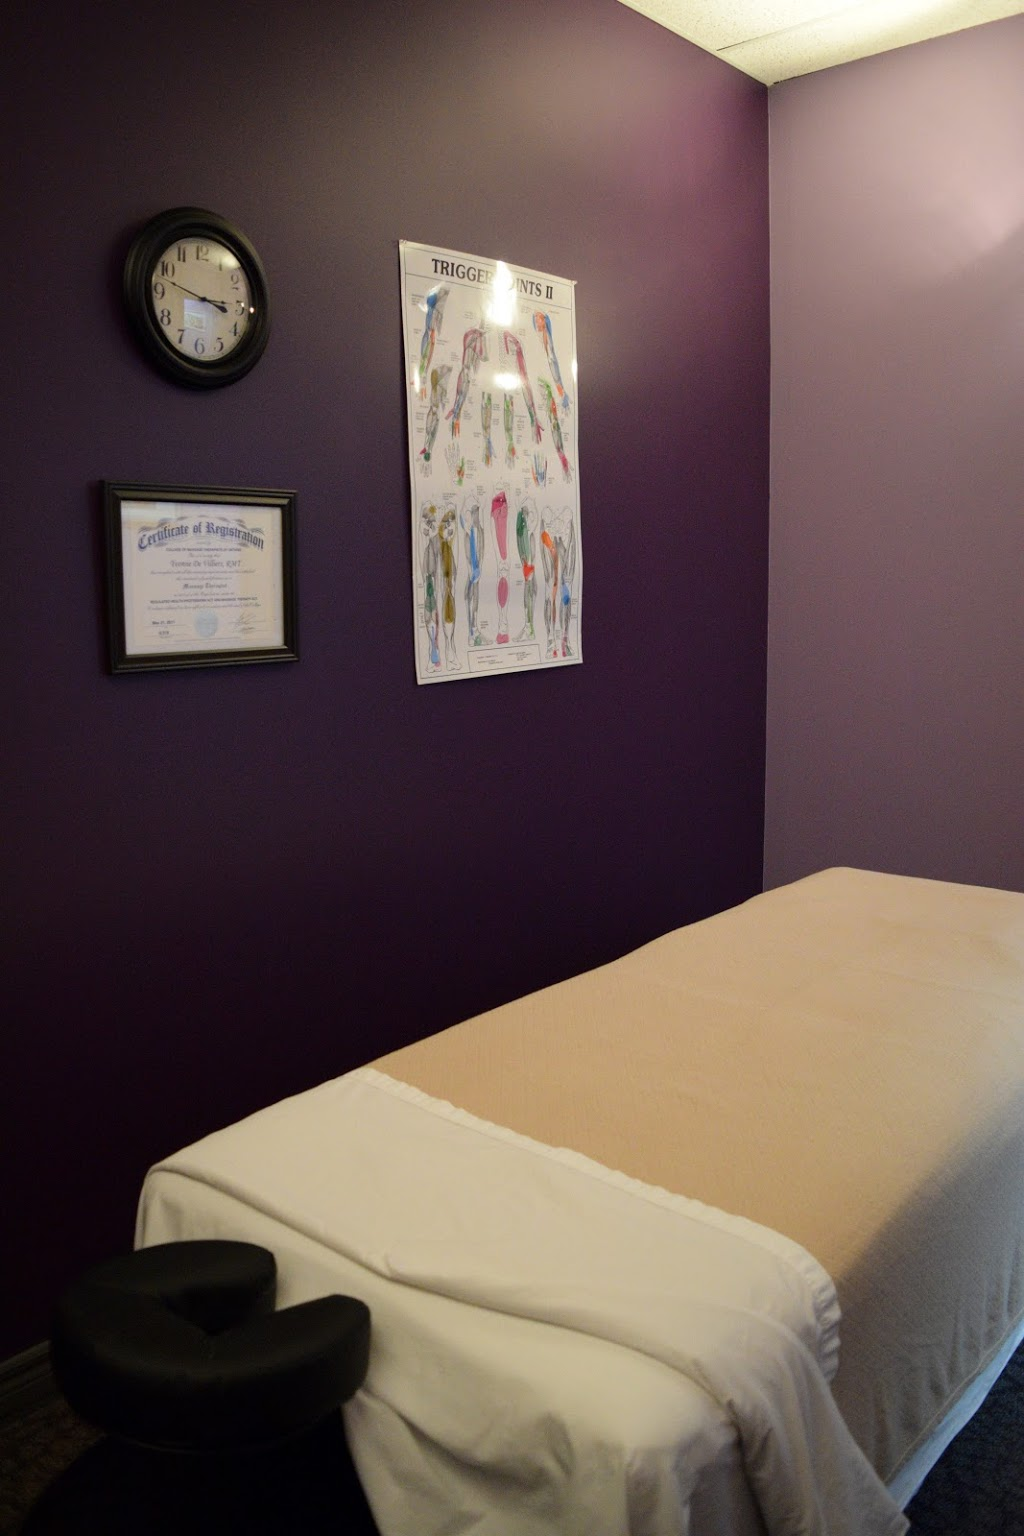 Absolute Chiropractic And Health Care | health | 163 Commissioners Rd W, London, ON N6J 1X9, Canada | 5196604440 OR +1 519-660-4440